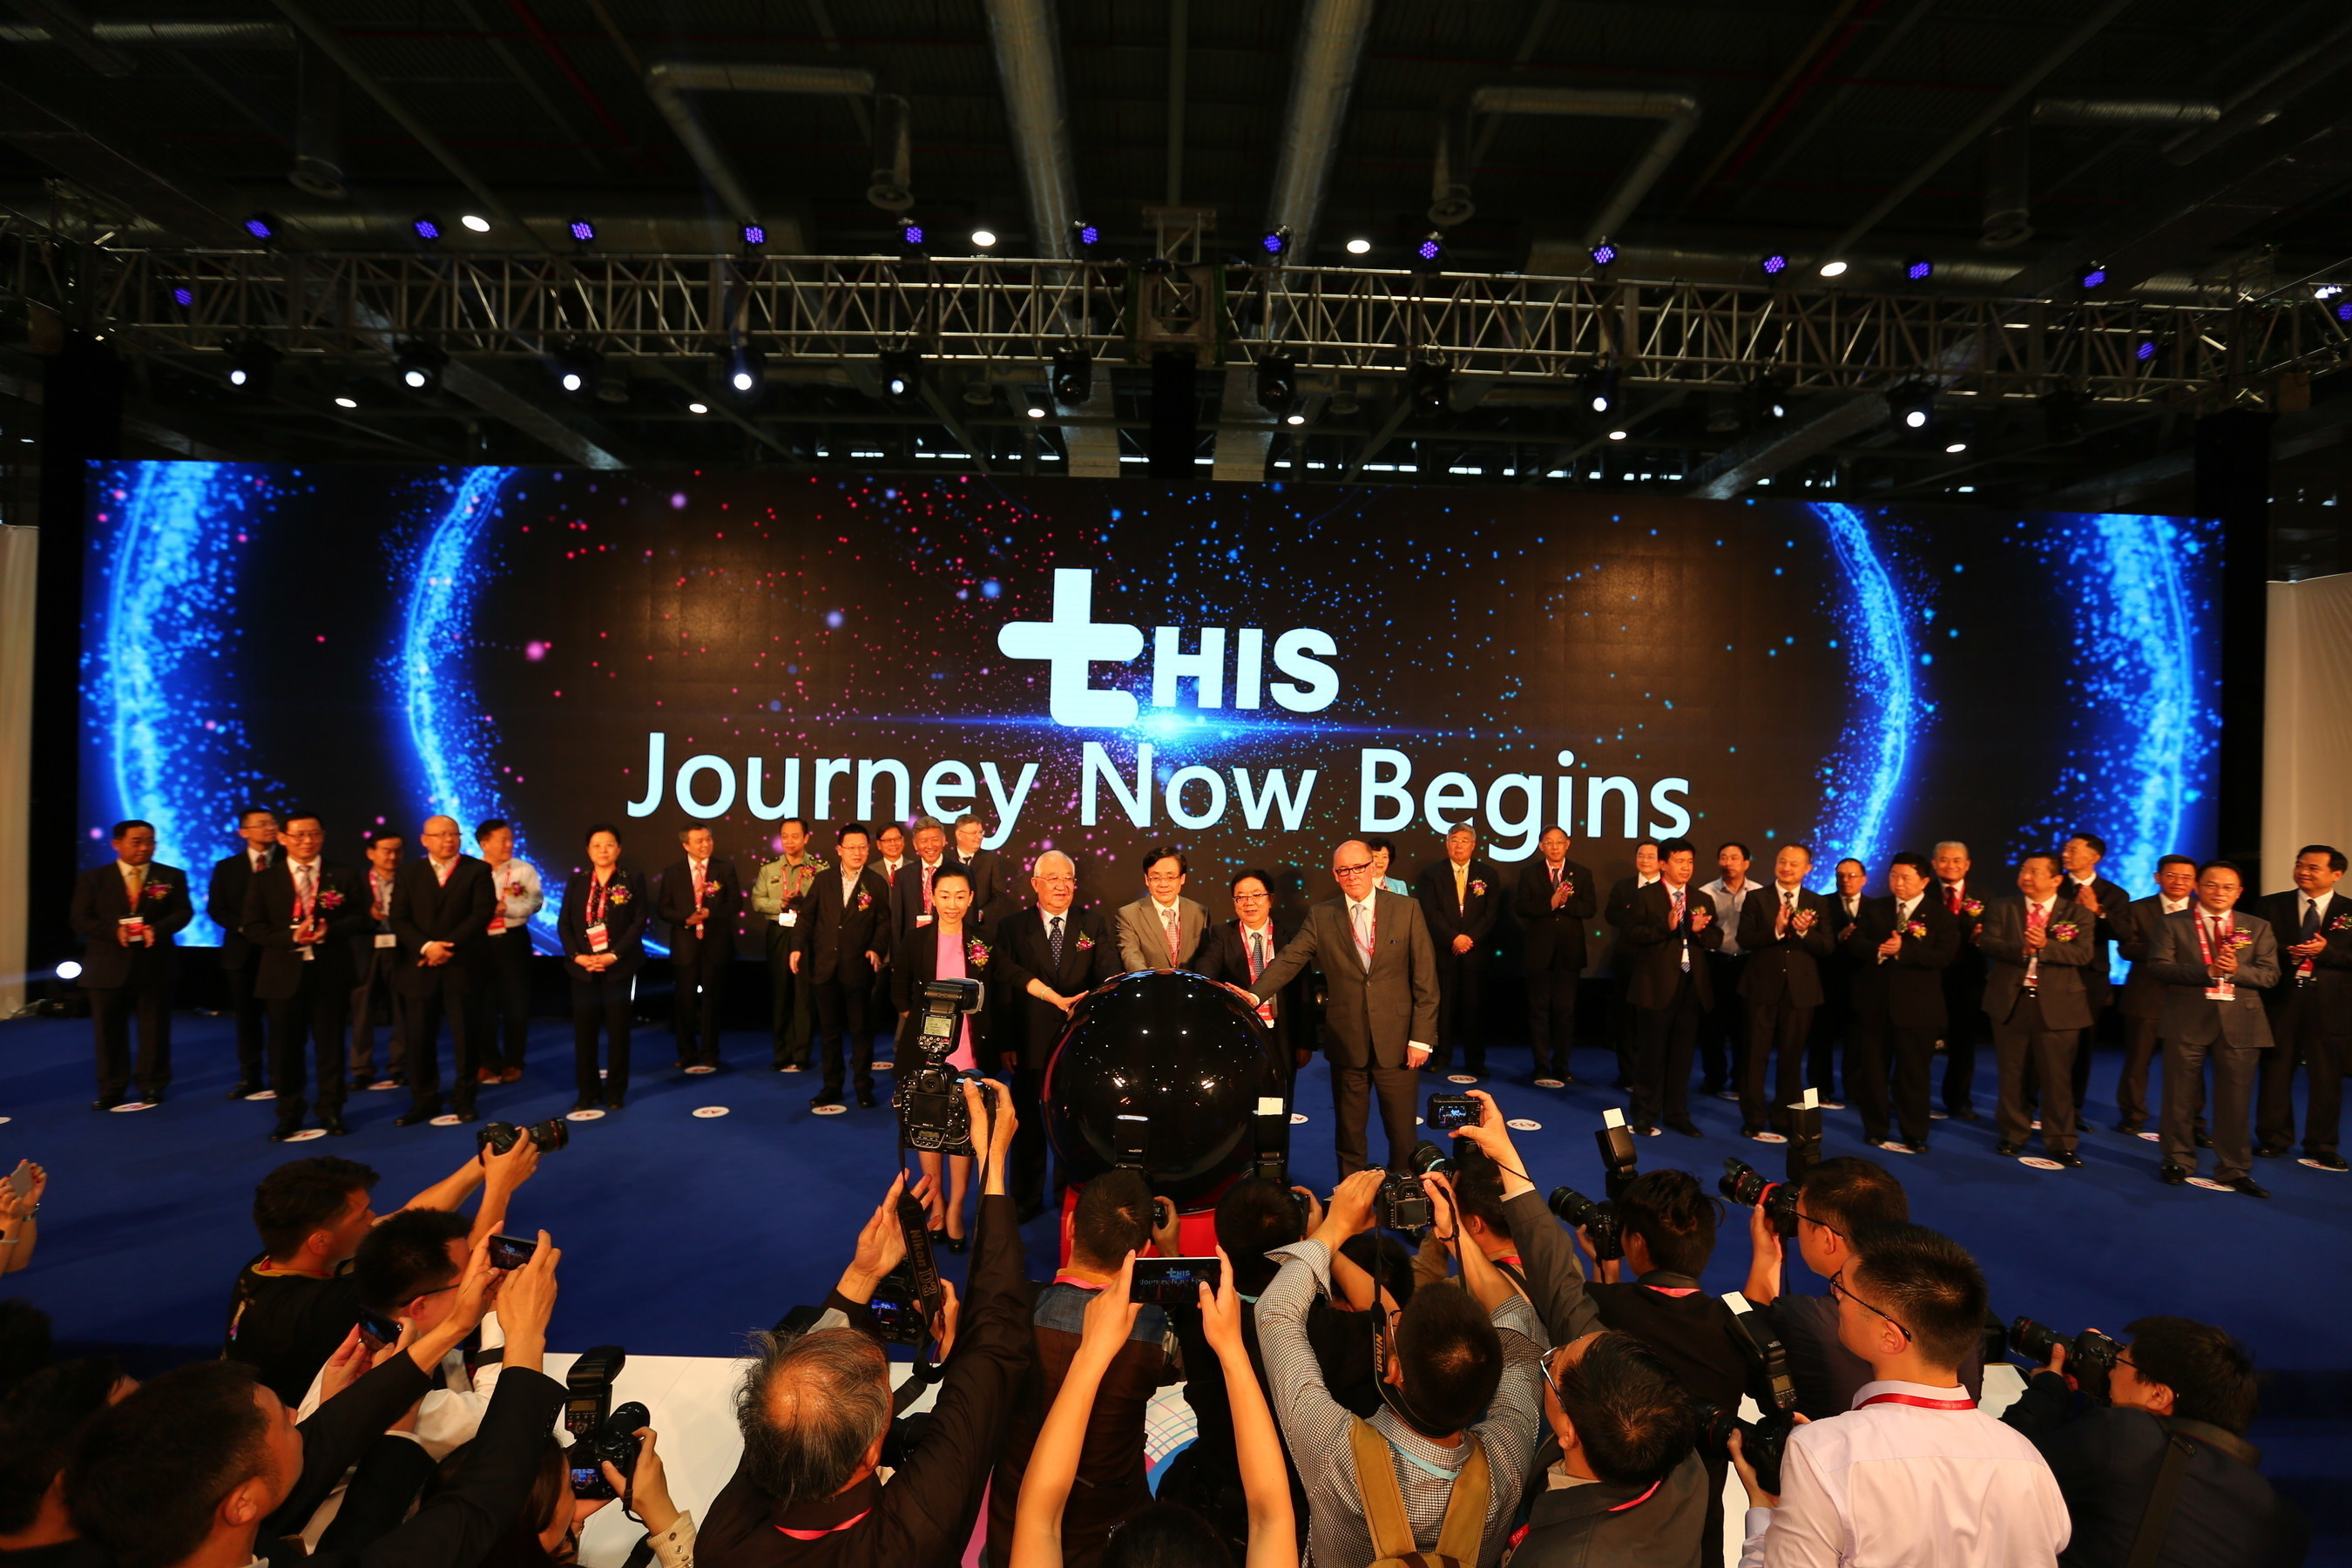 The World's Largest Healthcare Event -- tHIS Opens to Record Breaking Crowds